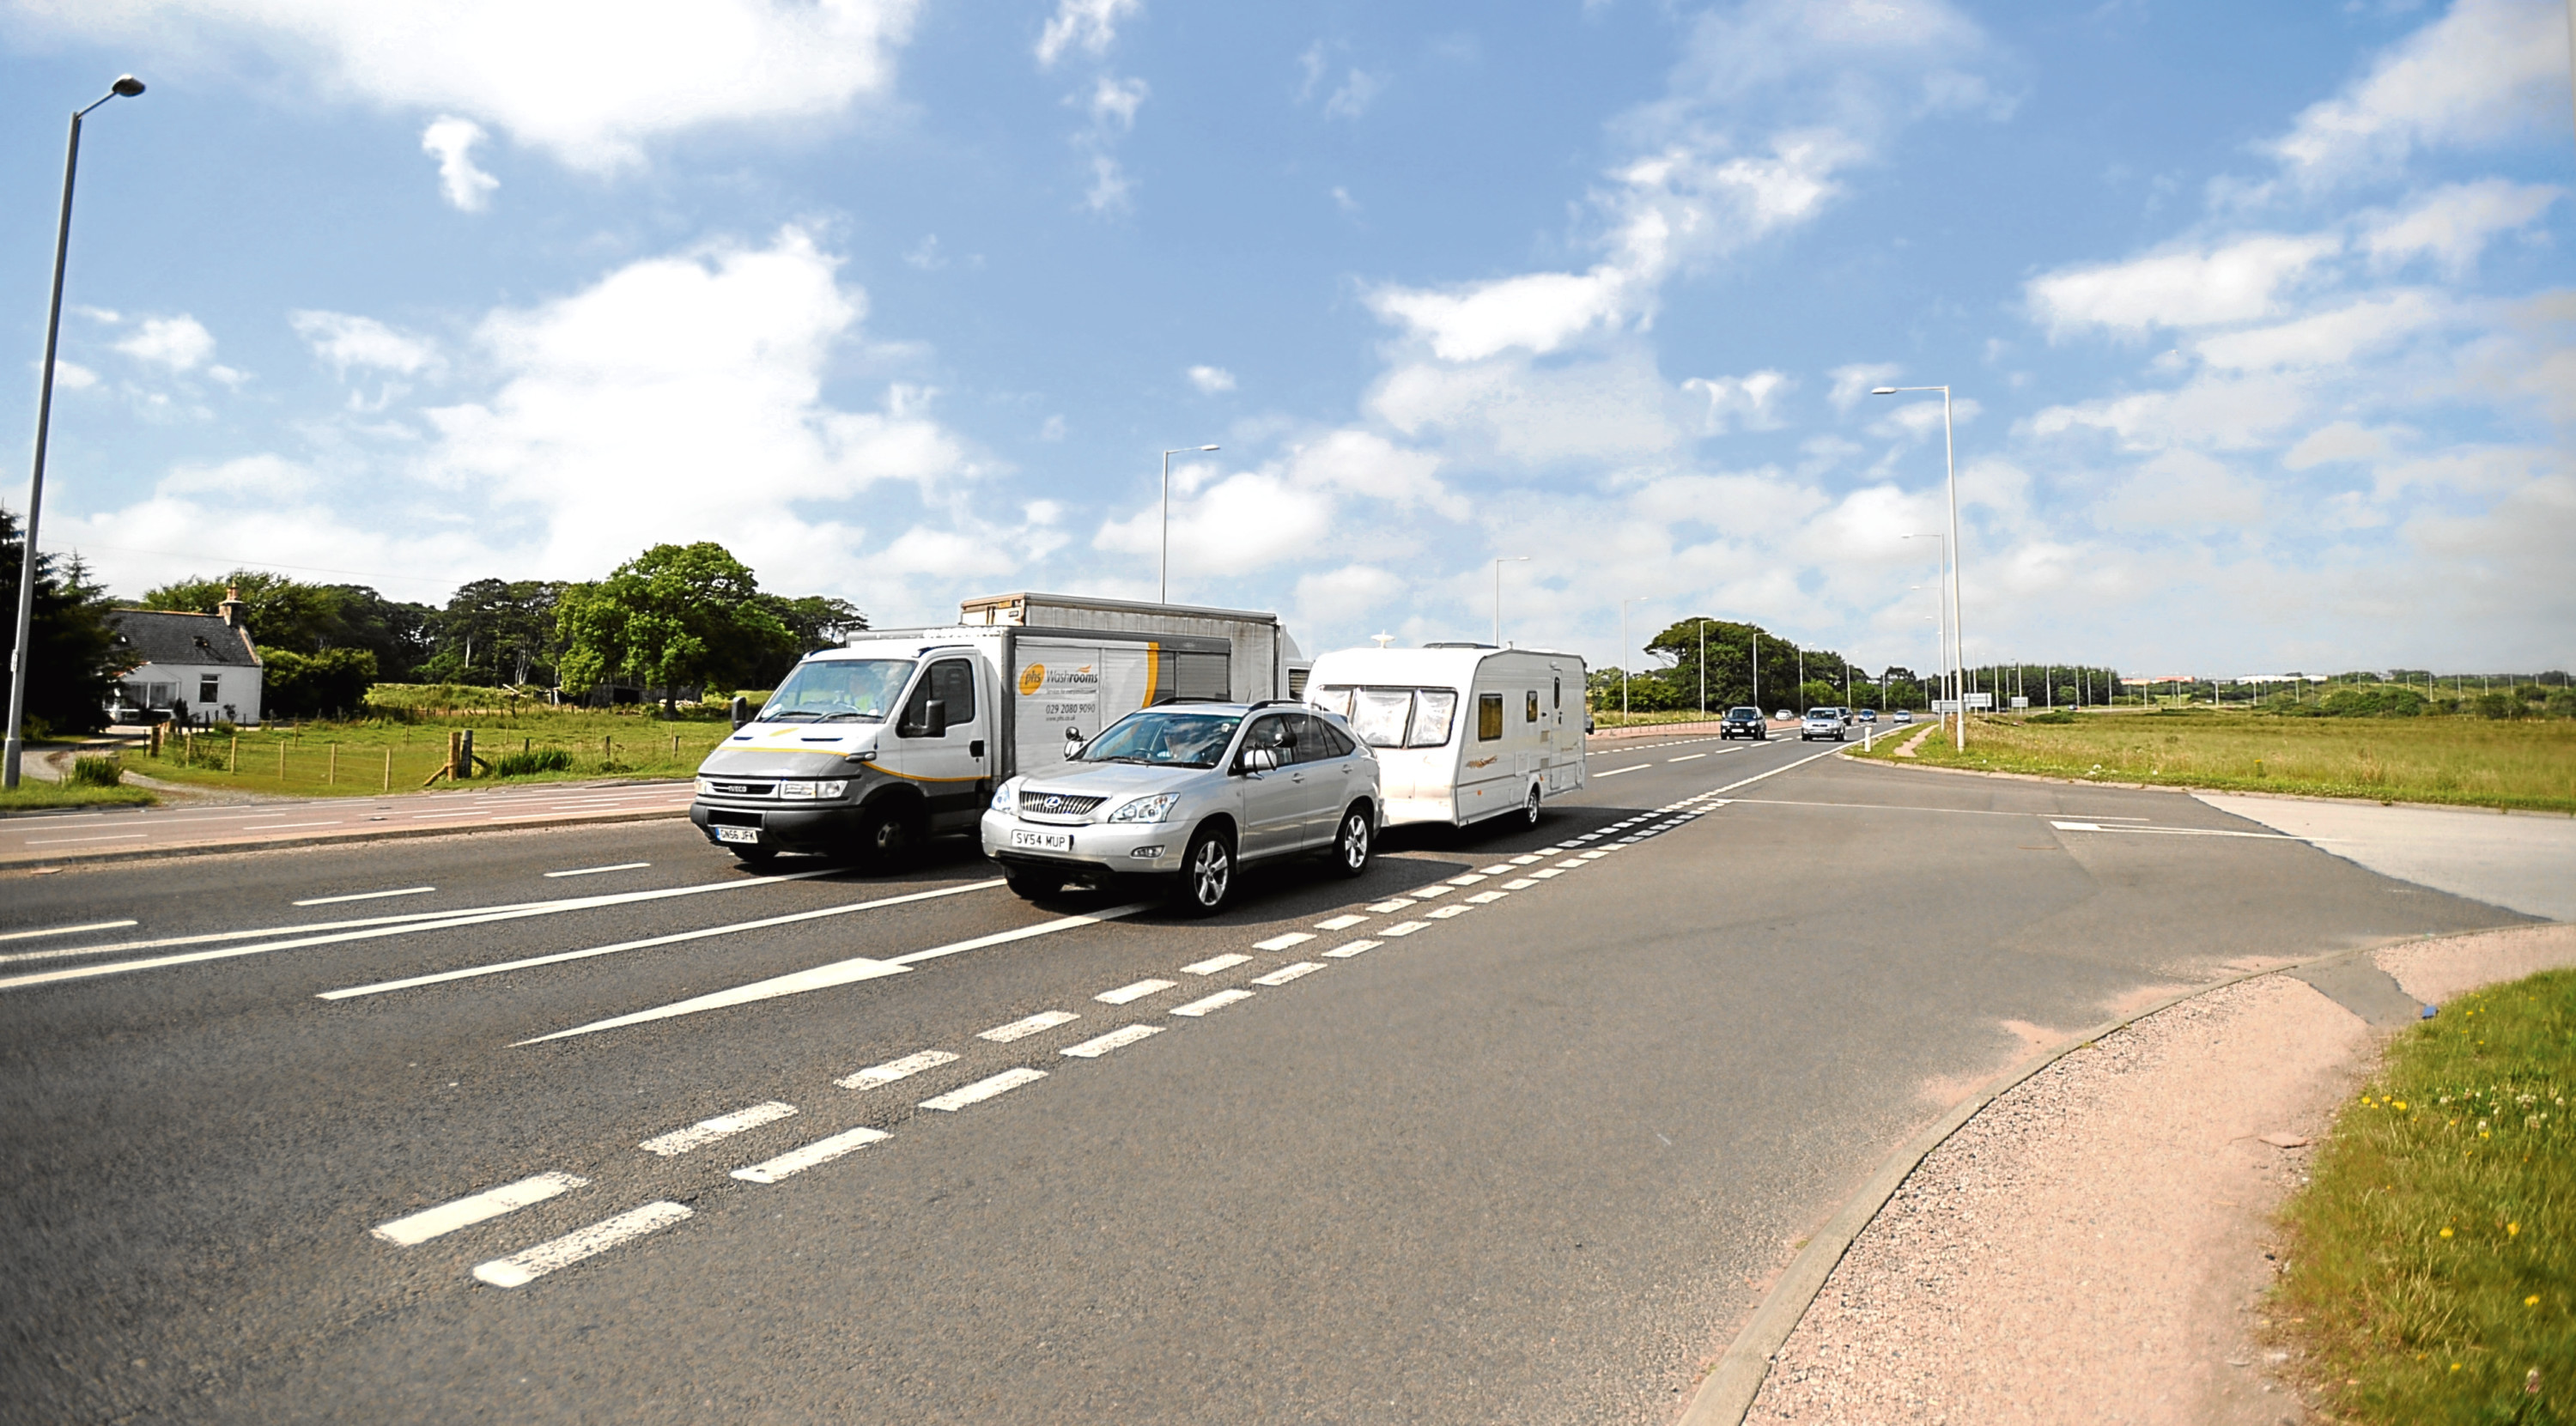 Police Scotland is to carry out patrols in areas of Portlethen after reports of speeding